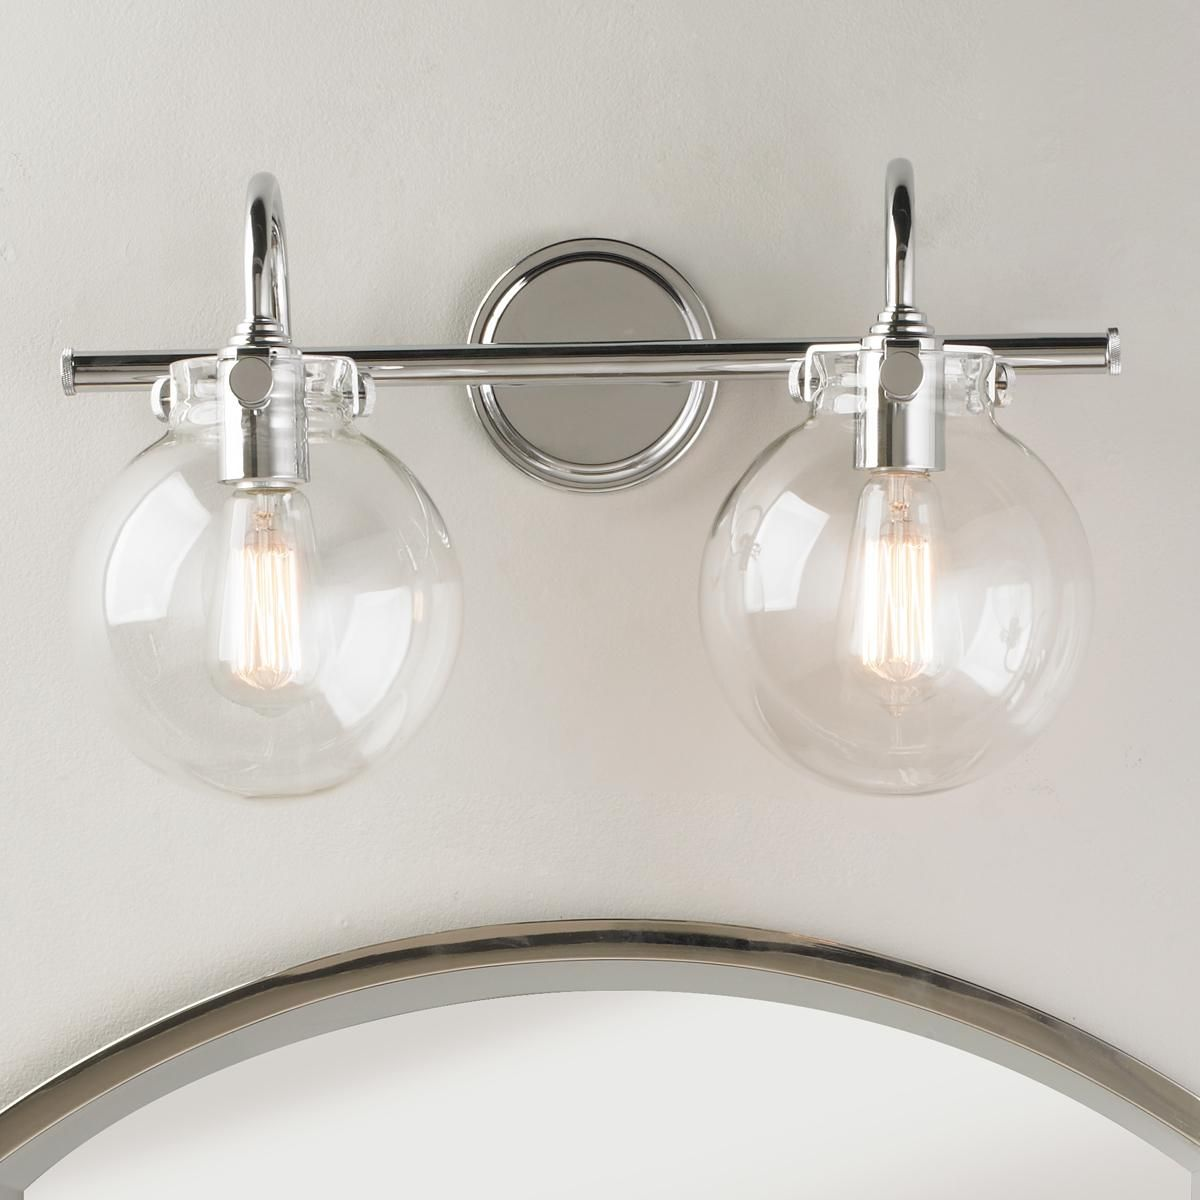 Retro Glass Globe Bath Light - 2 Light Bath light, Globe and Vanities